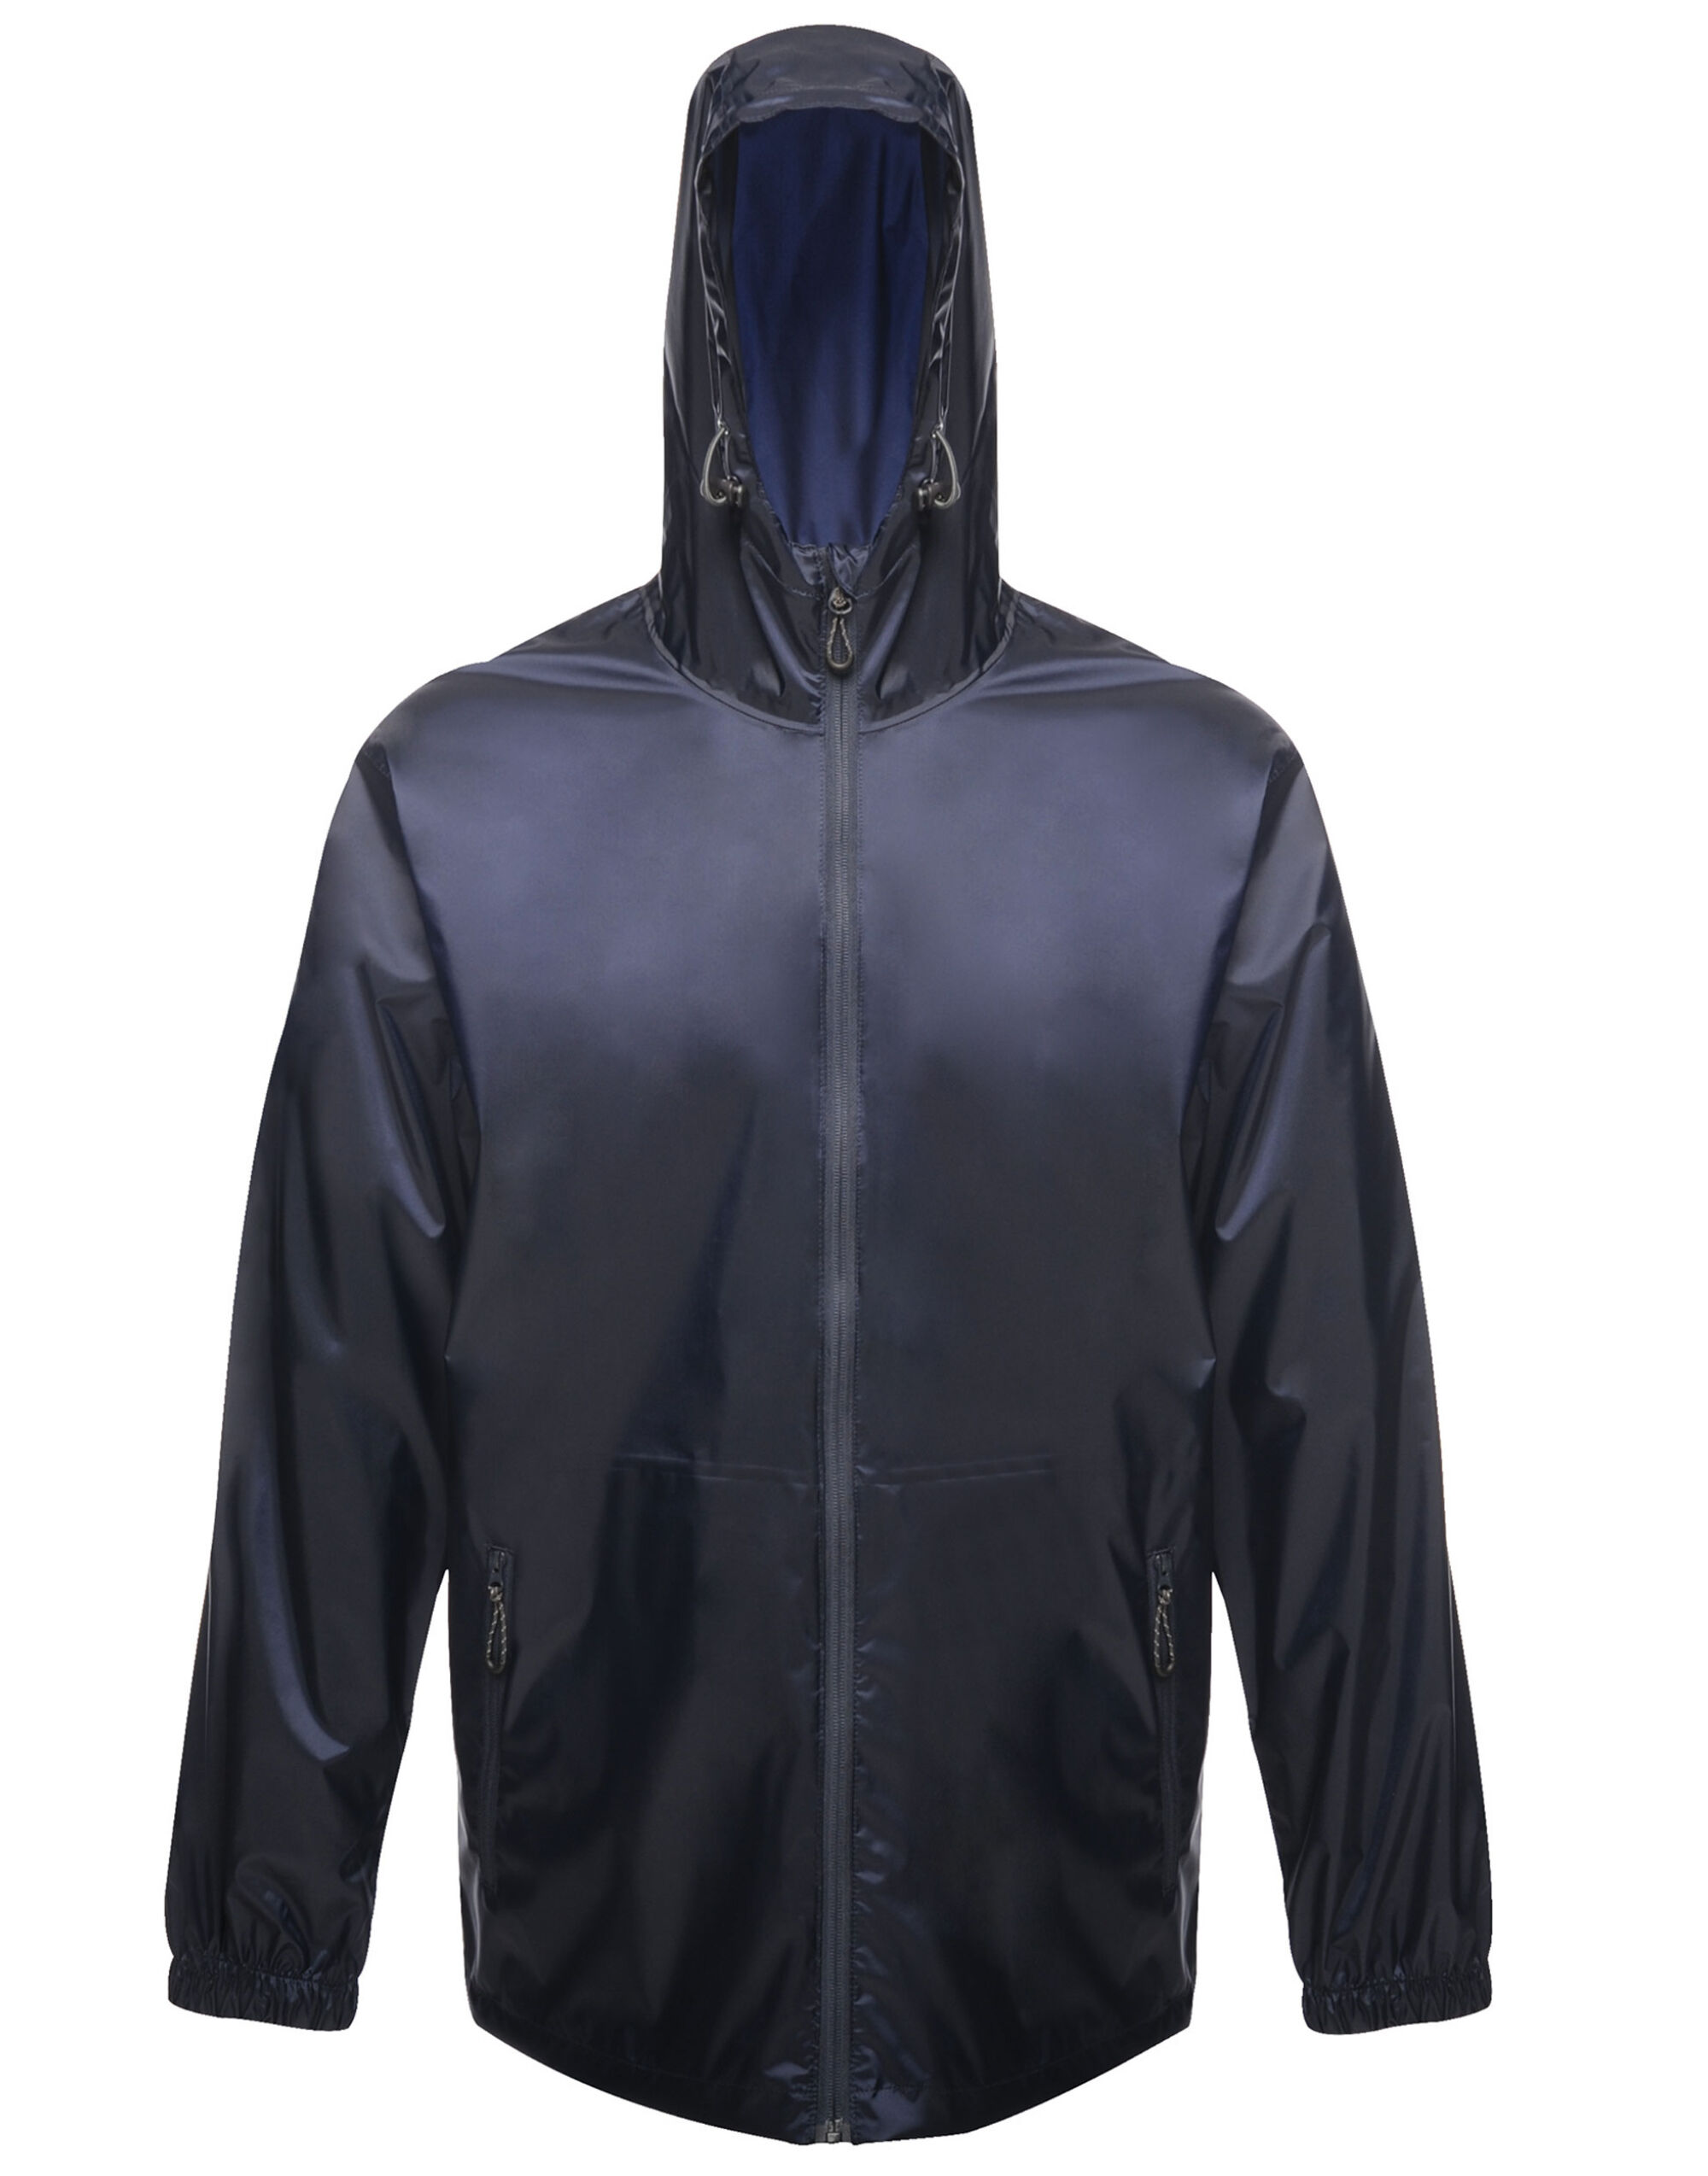 Mens Pro Packaway Jacket